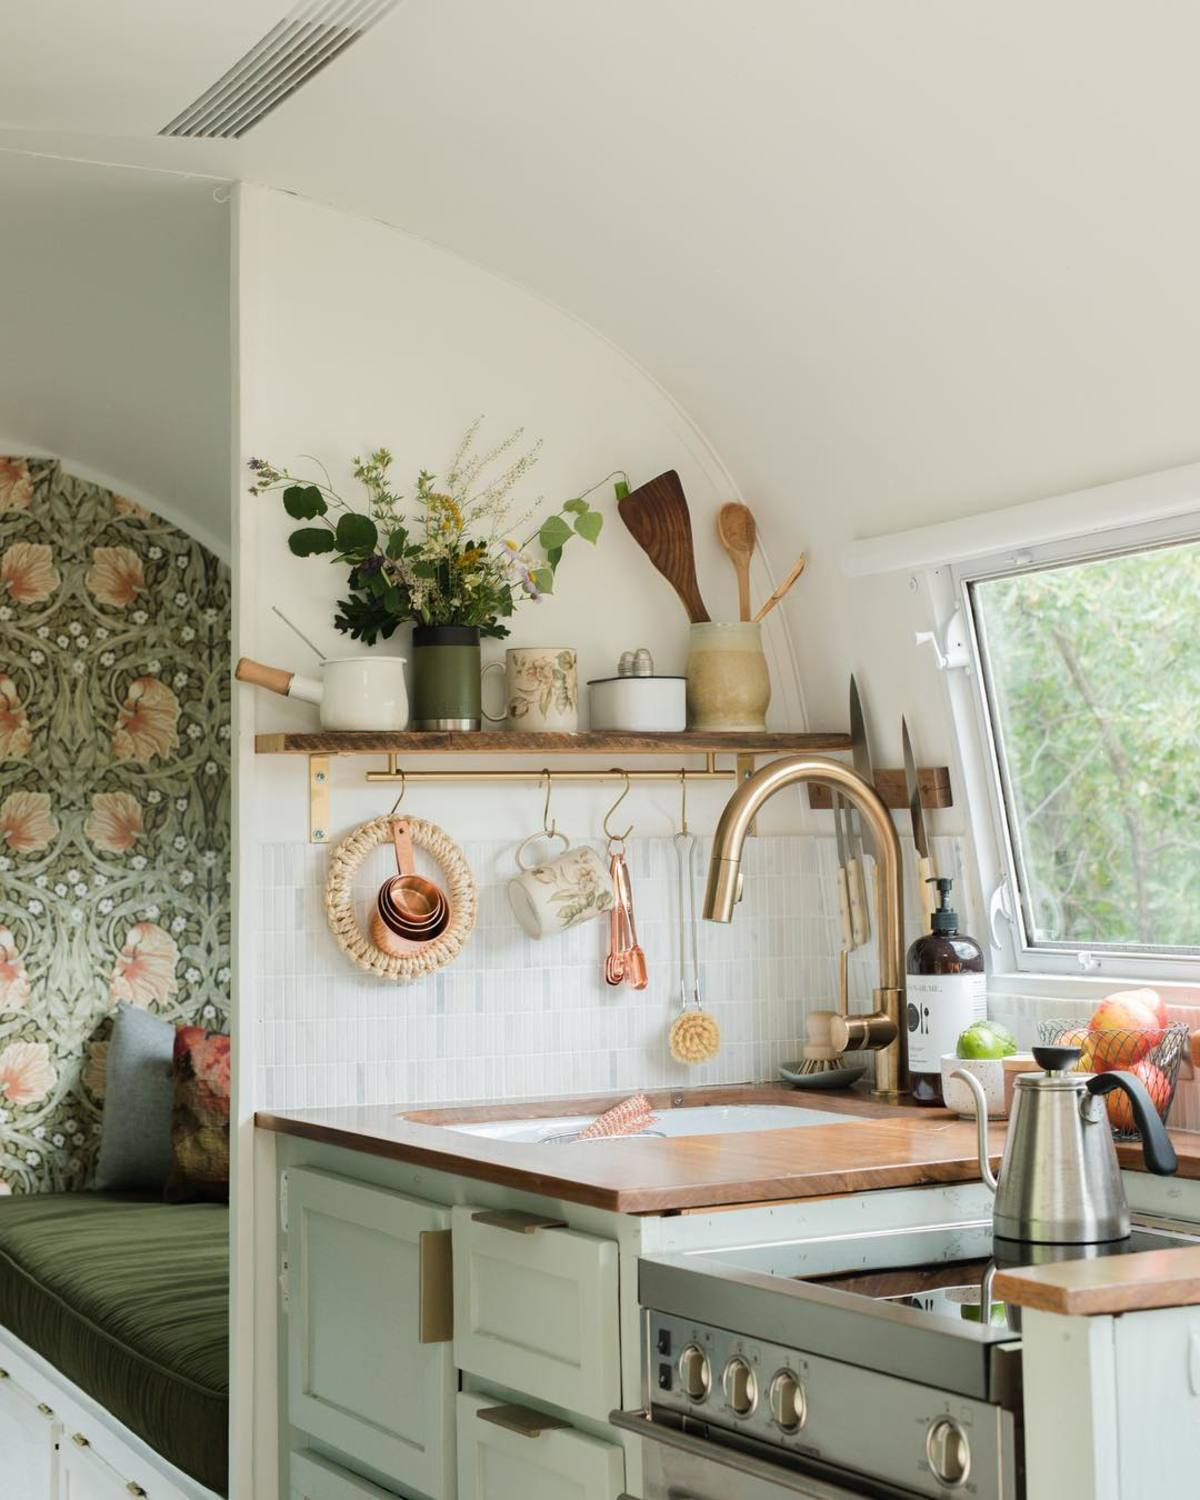 airtsream trailer marjorie 21 - This renovated Airstream trailer is all floral and boho-chic charm